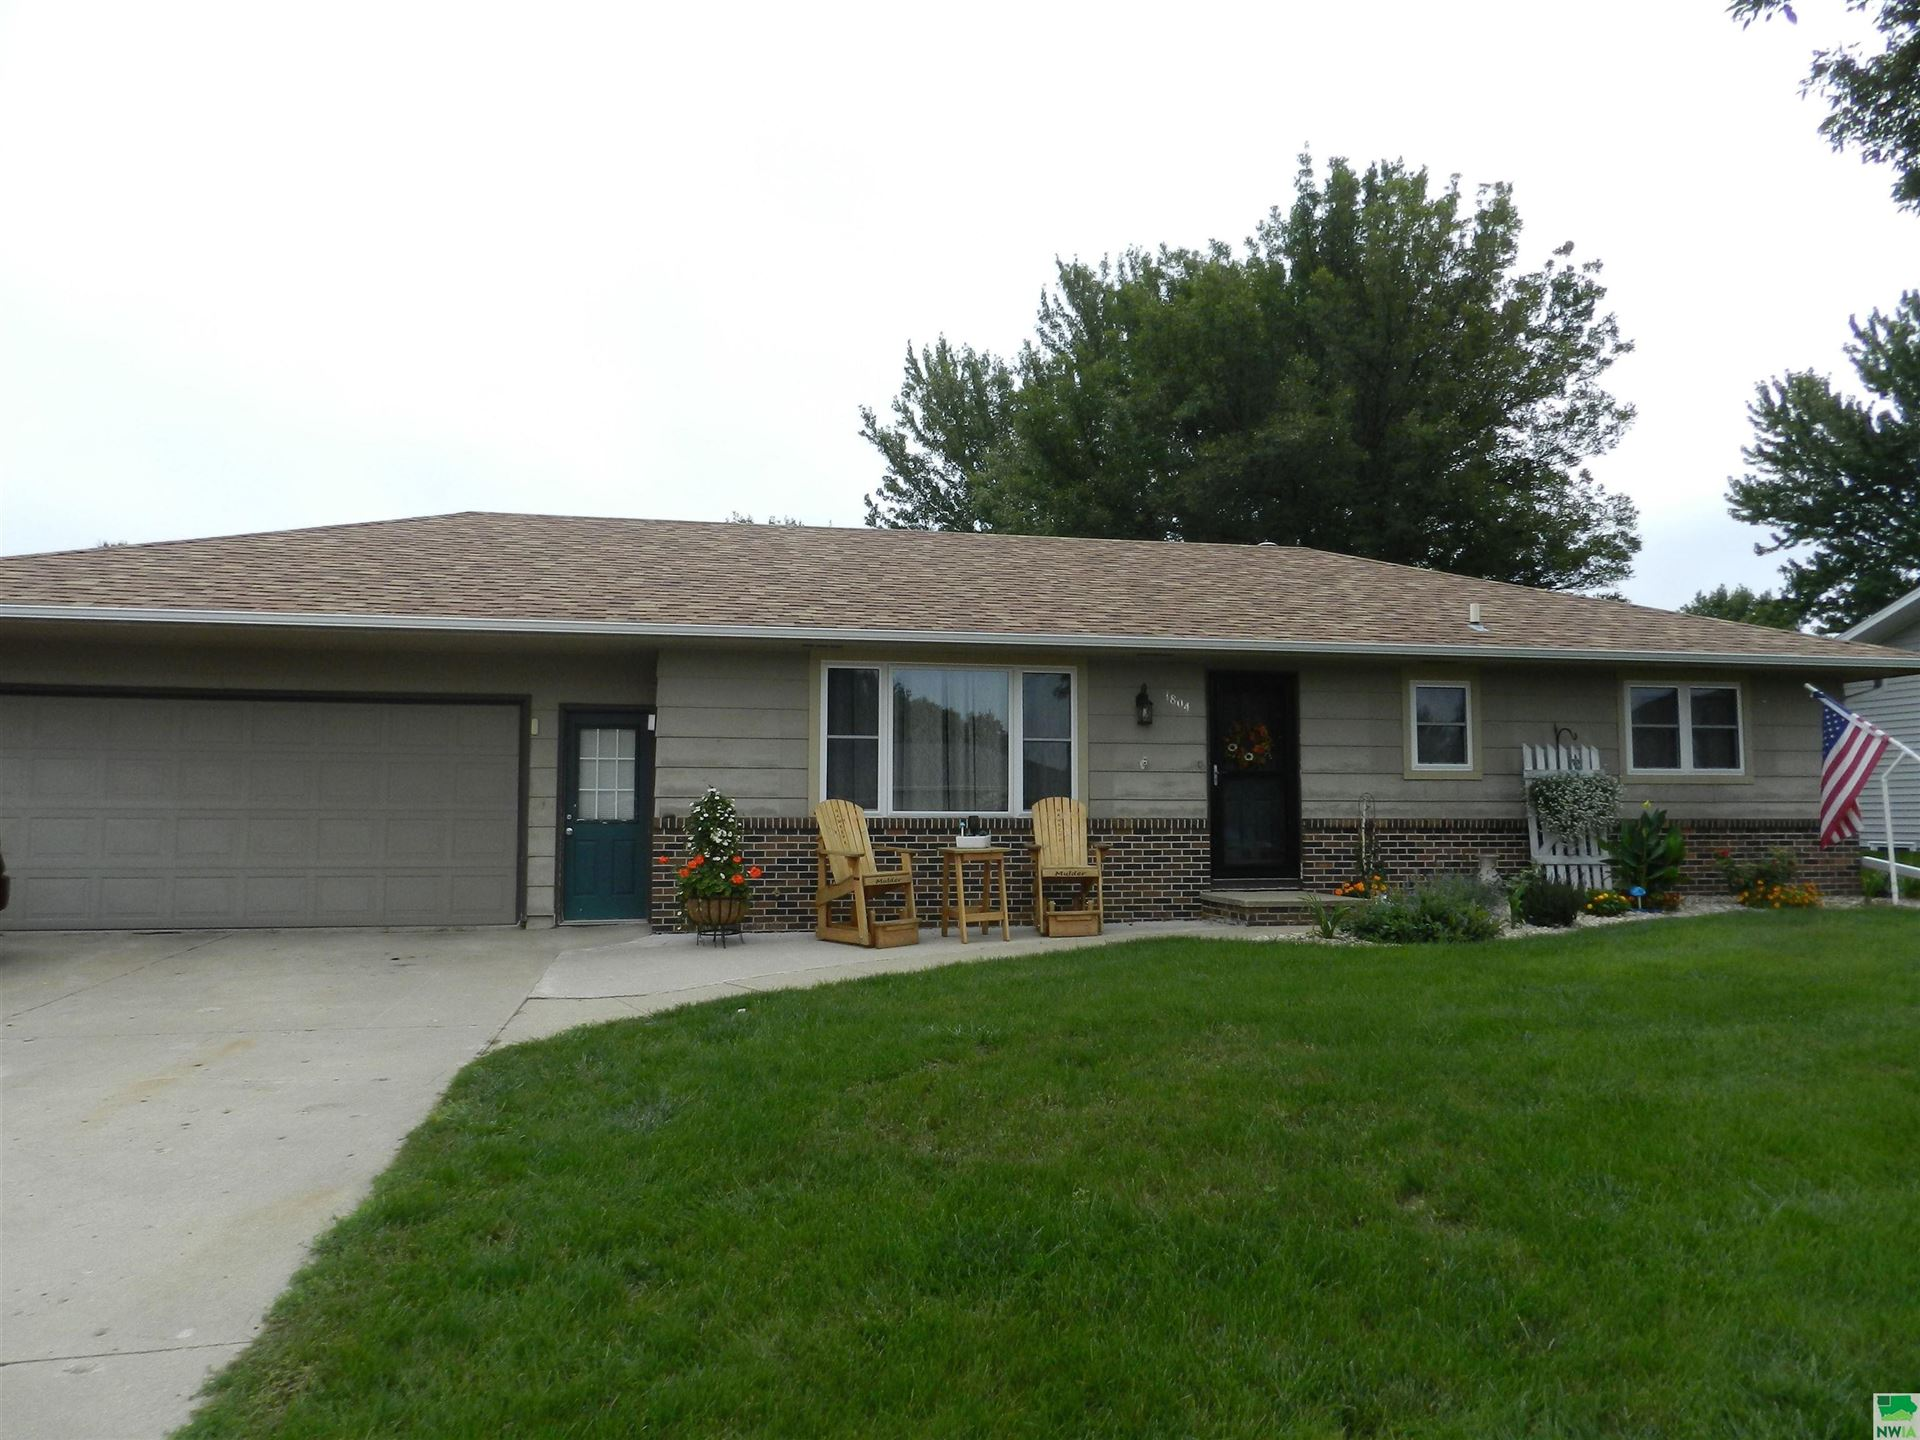 Photo for 1804 2nd Ave. SE, Sioux Center, IA 51250 (MLS # 814750)